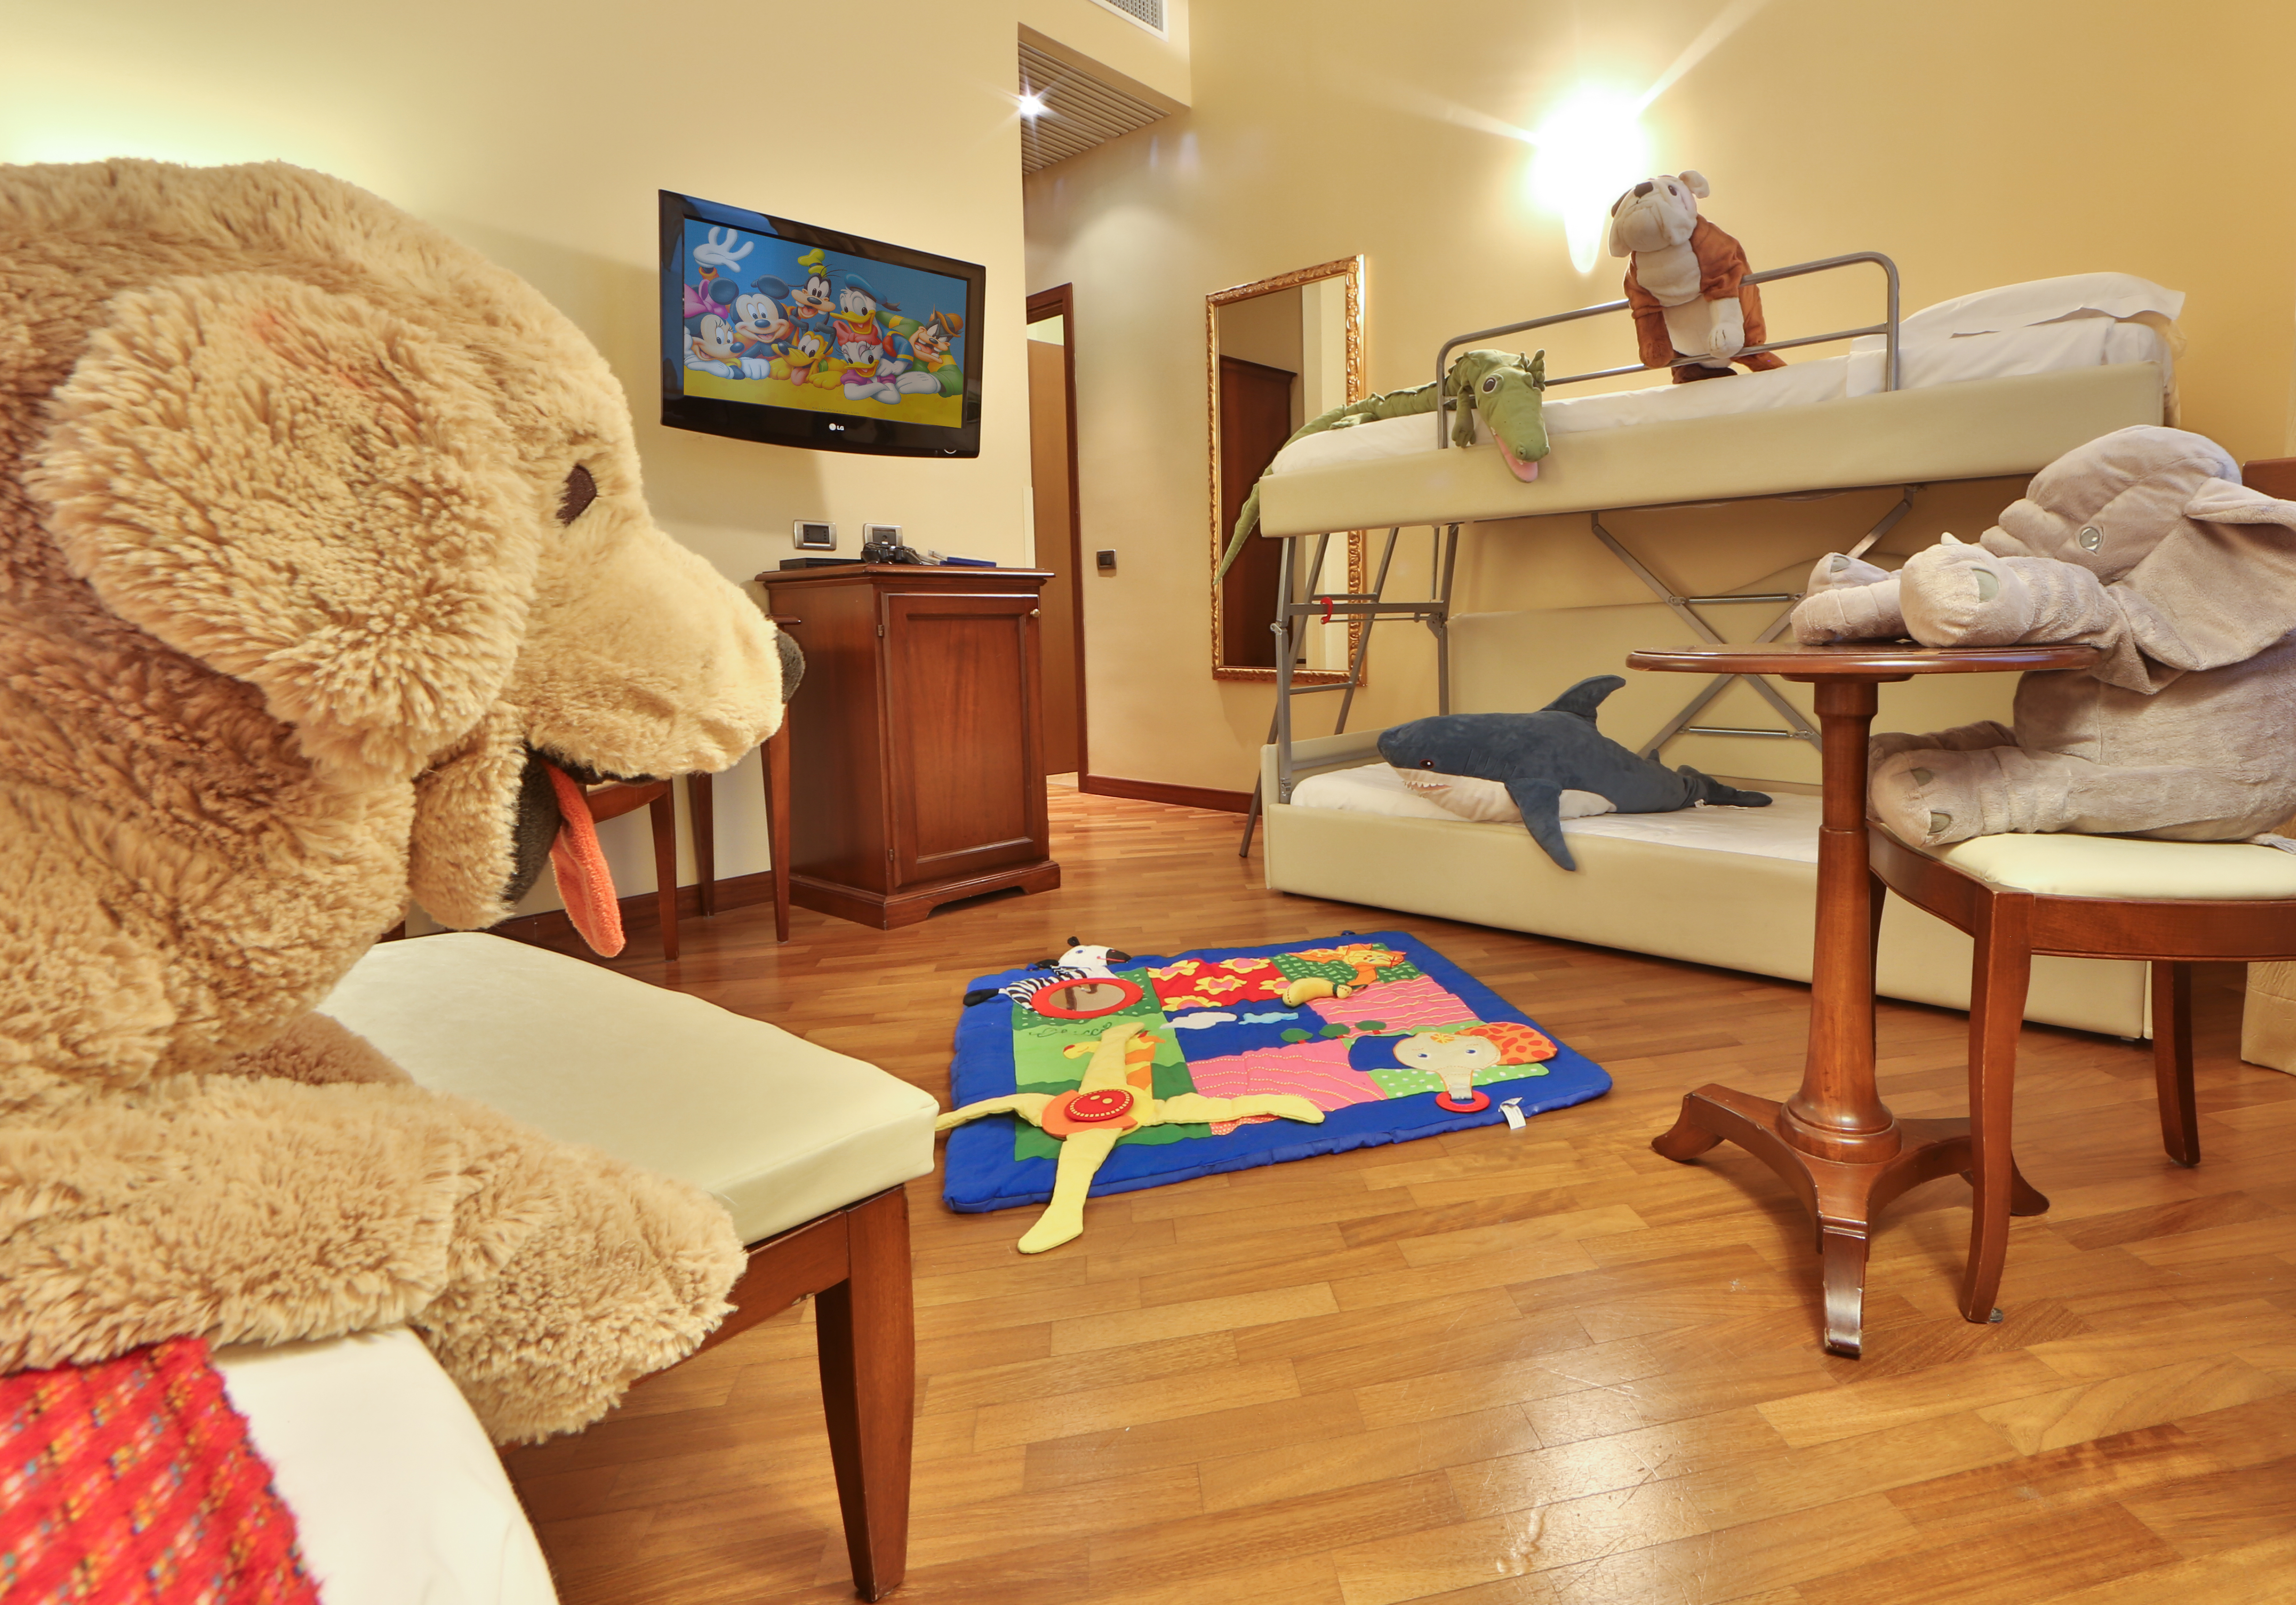 Bambini in Hotel: i Servizi Kids and Family di Best Western